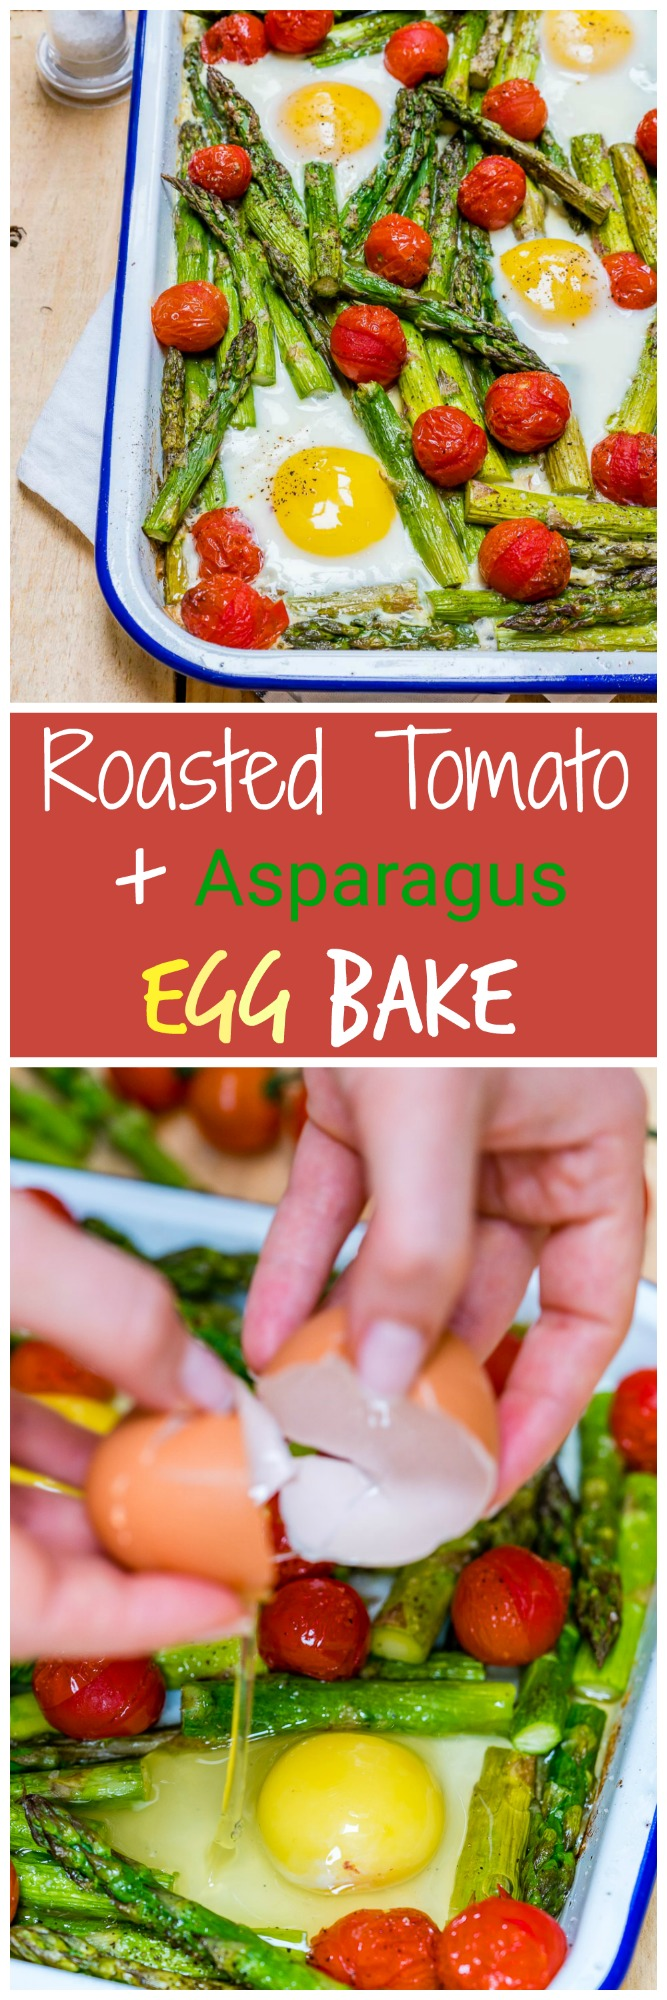 Roasted Tomato Asparagus Egg Bake Clean Recipe